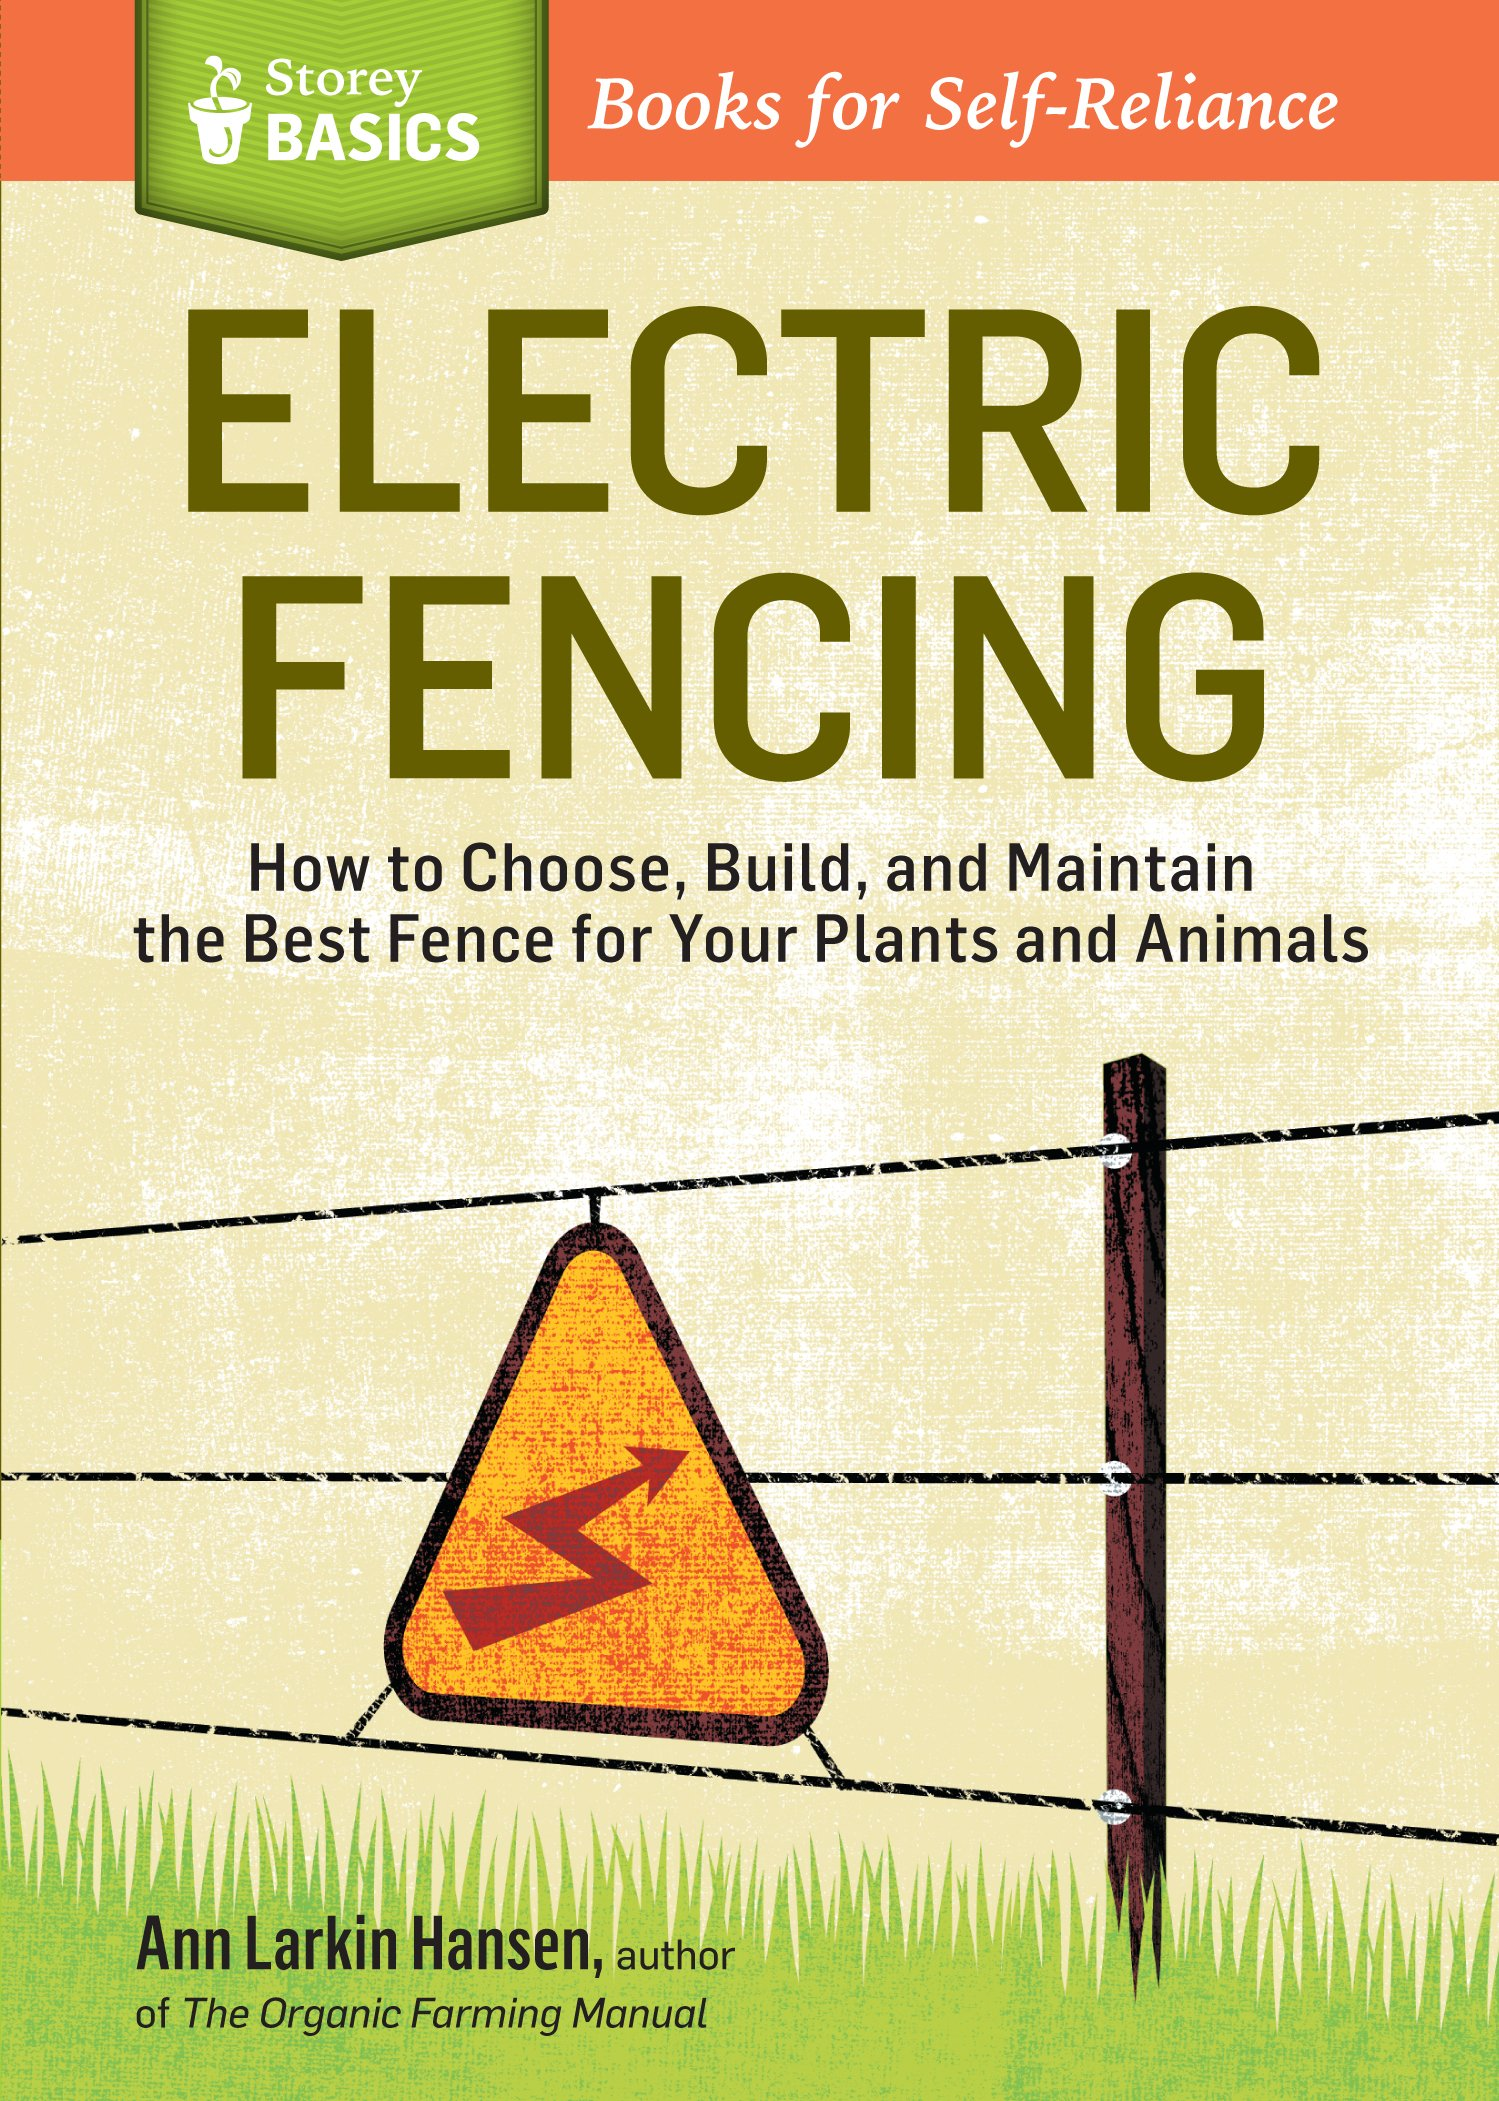 Electric Fencing: How to Choose, Build, and Maintain the Best Fence